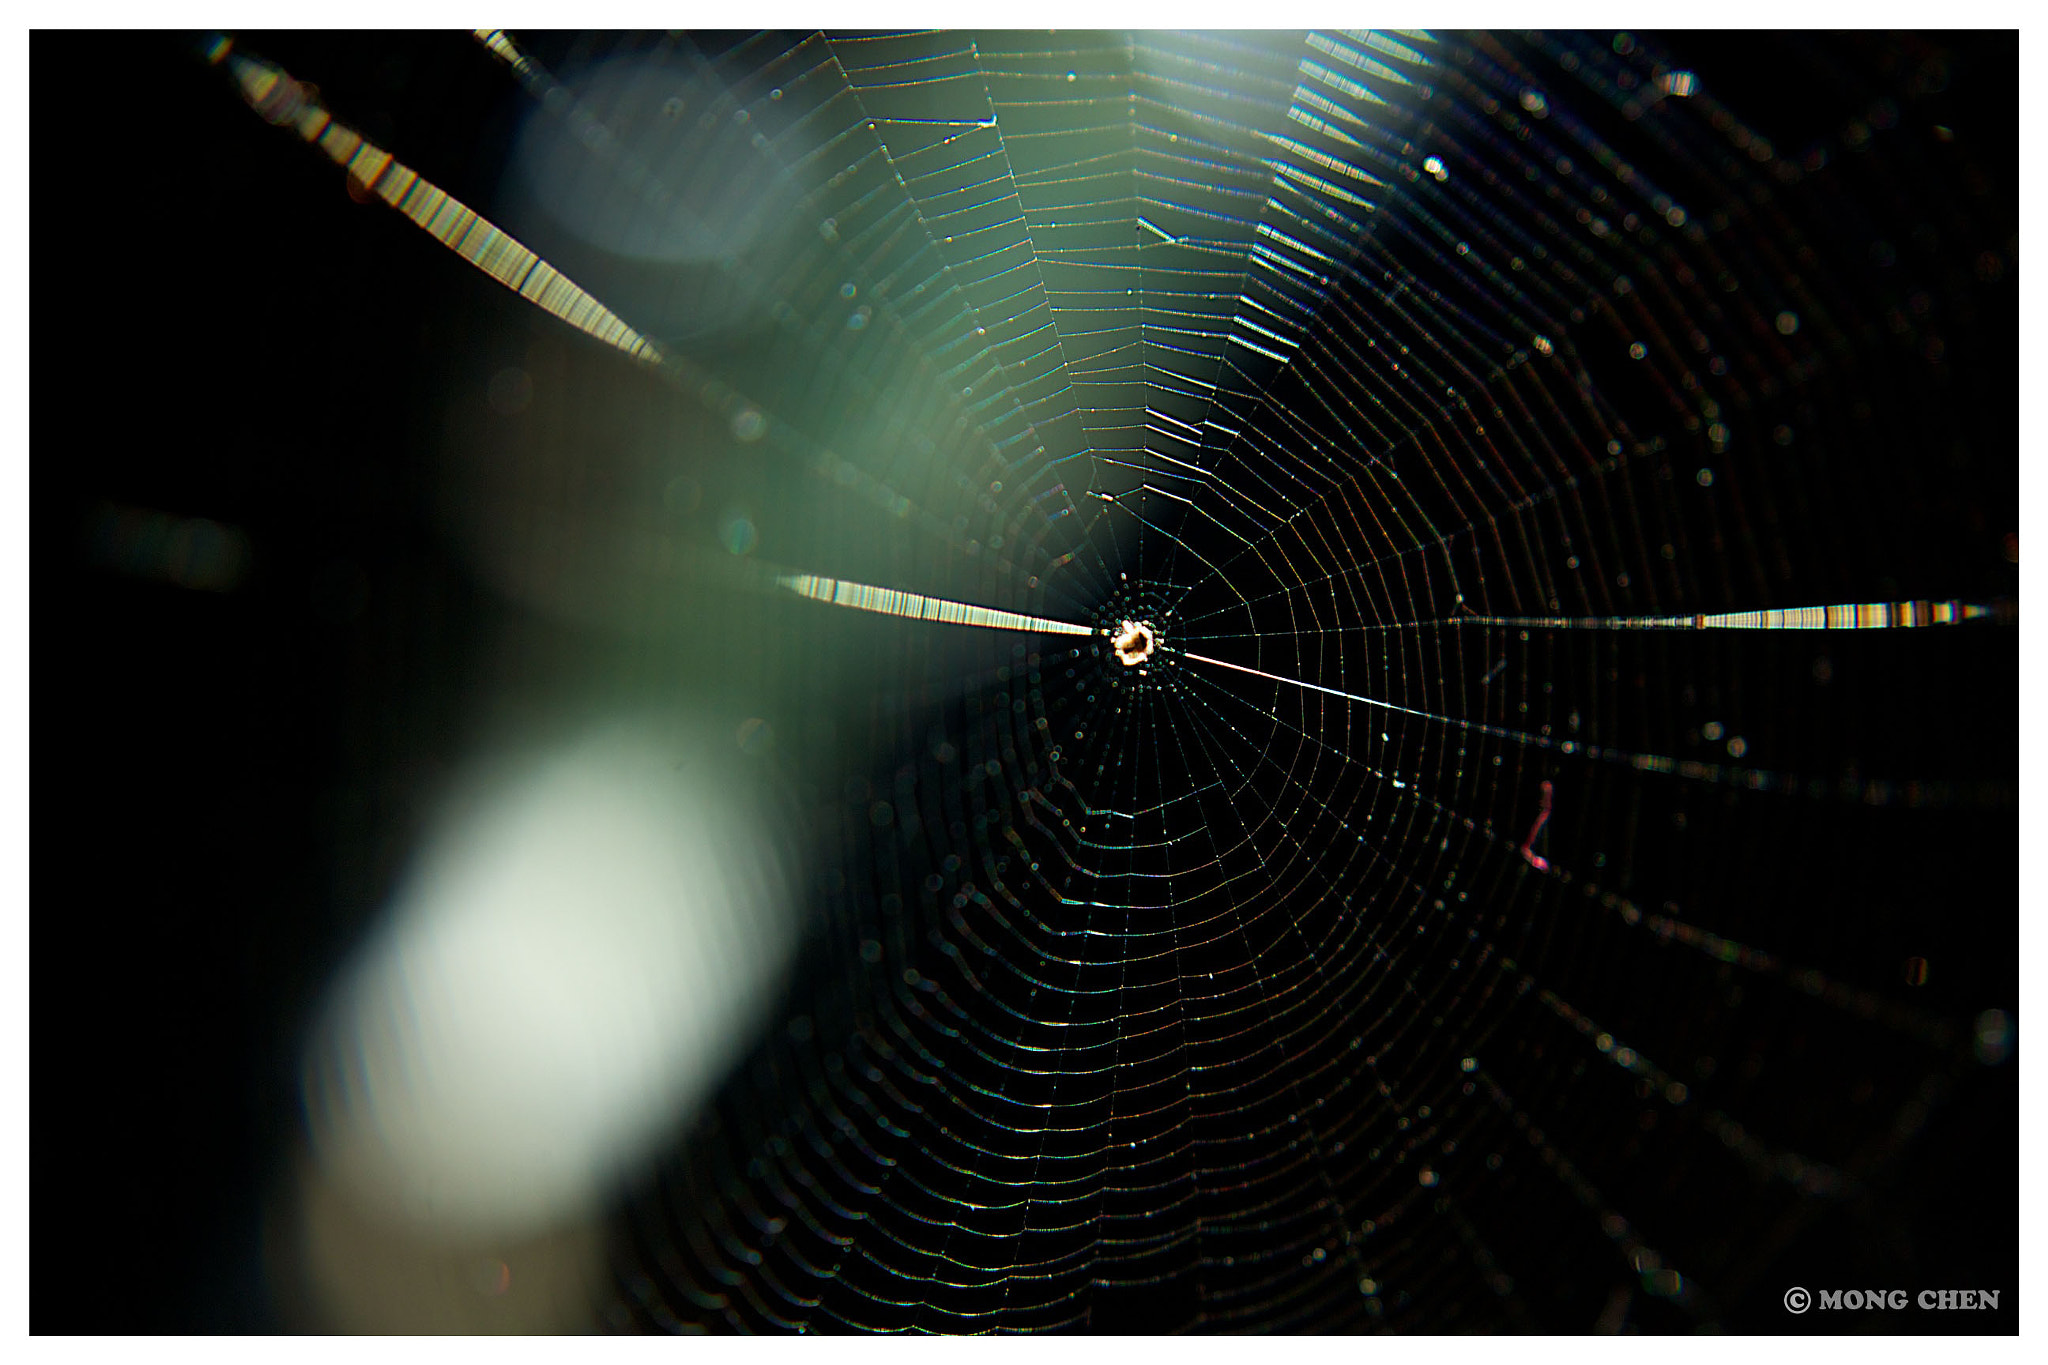 Photograph House of Spider by Mong Chen on 500px